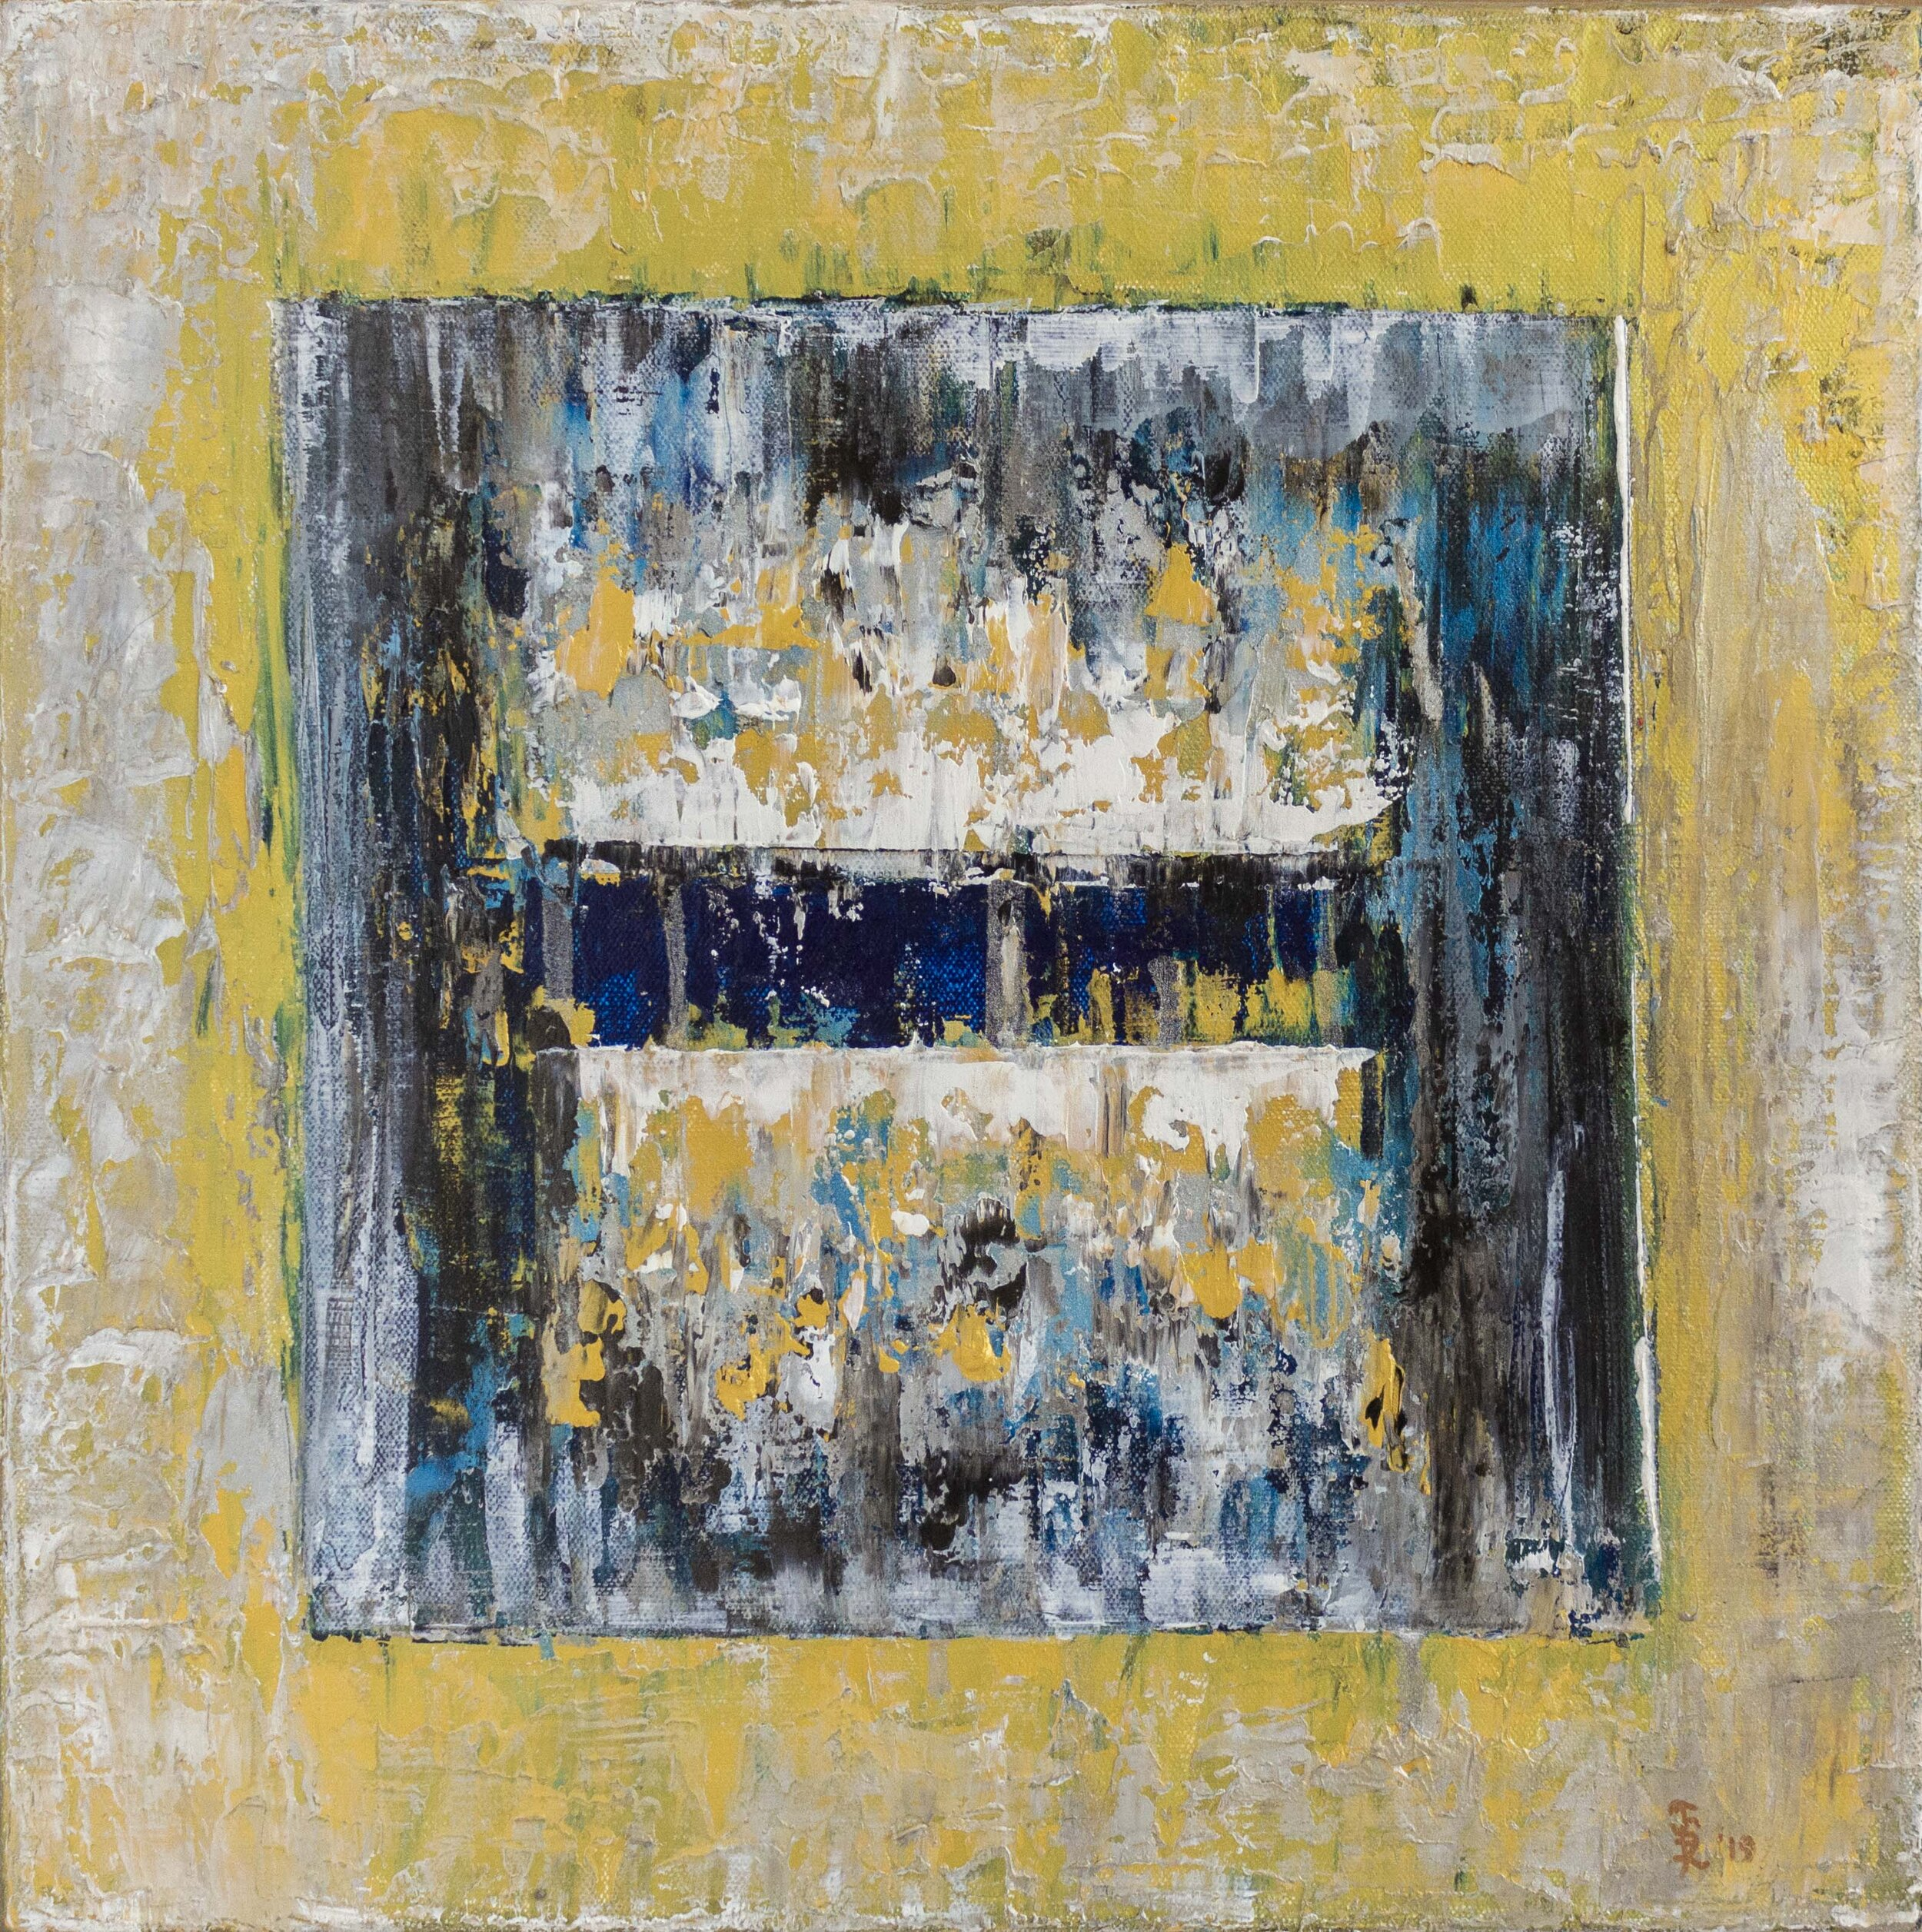 Ice Cube Small Gold & Blue, 2019